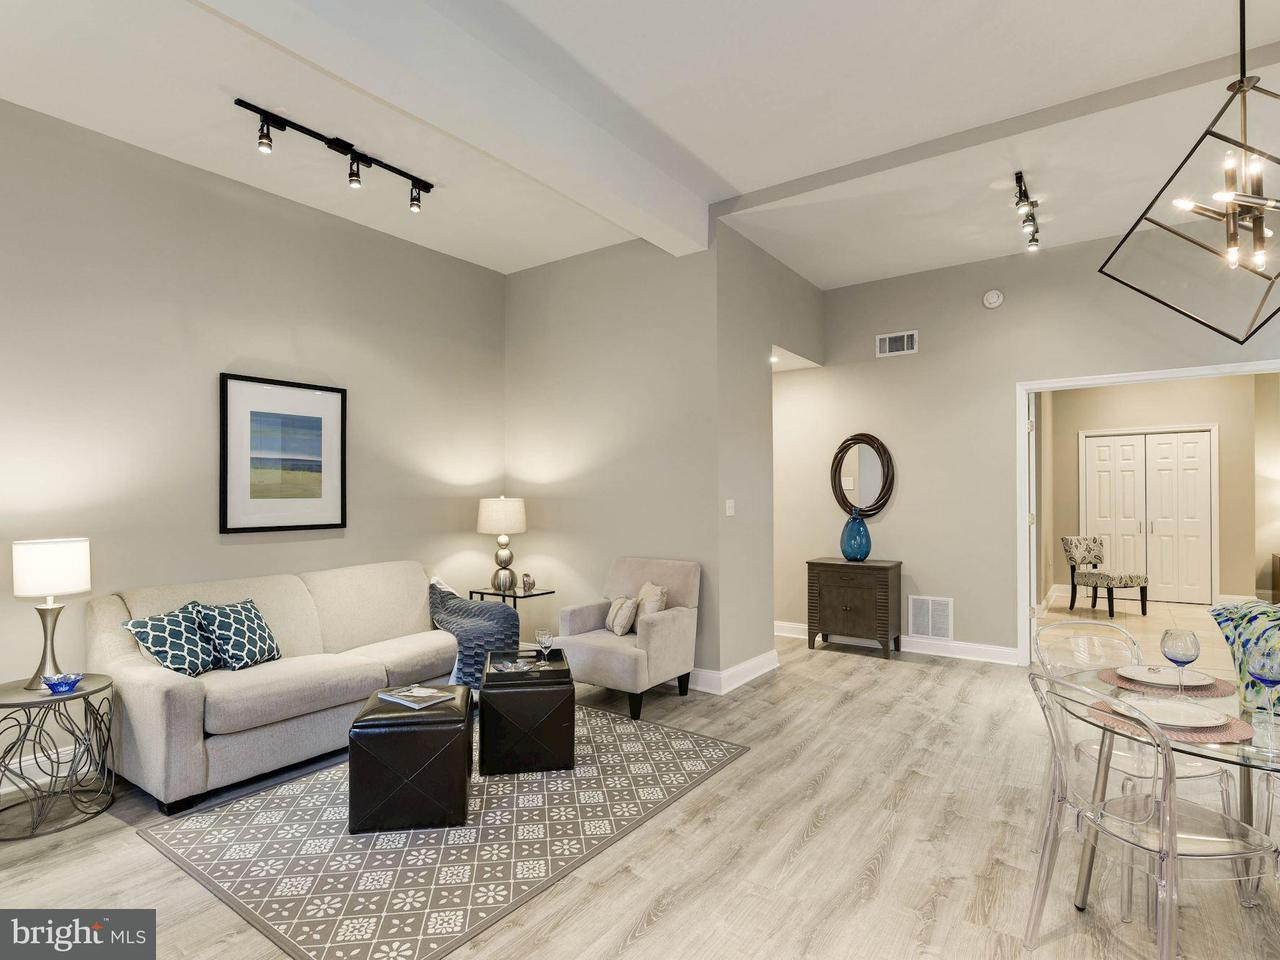 Single Family Home for Sale at 1750 HARVARD ST NW #1A 1750 HARVARD ST NW #1A Washington, District Of Columbia 20009 United States